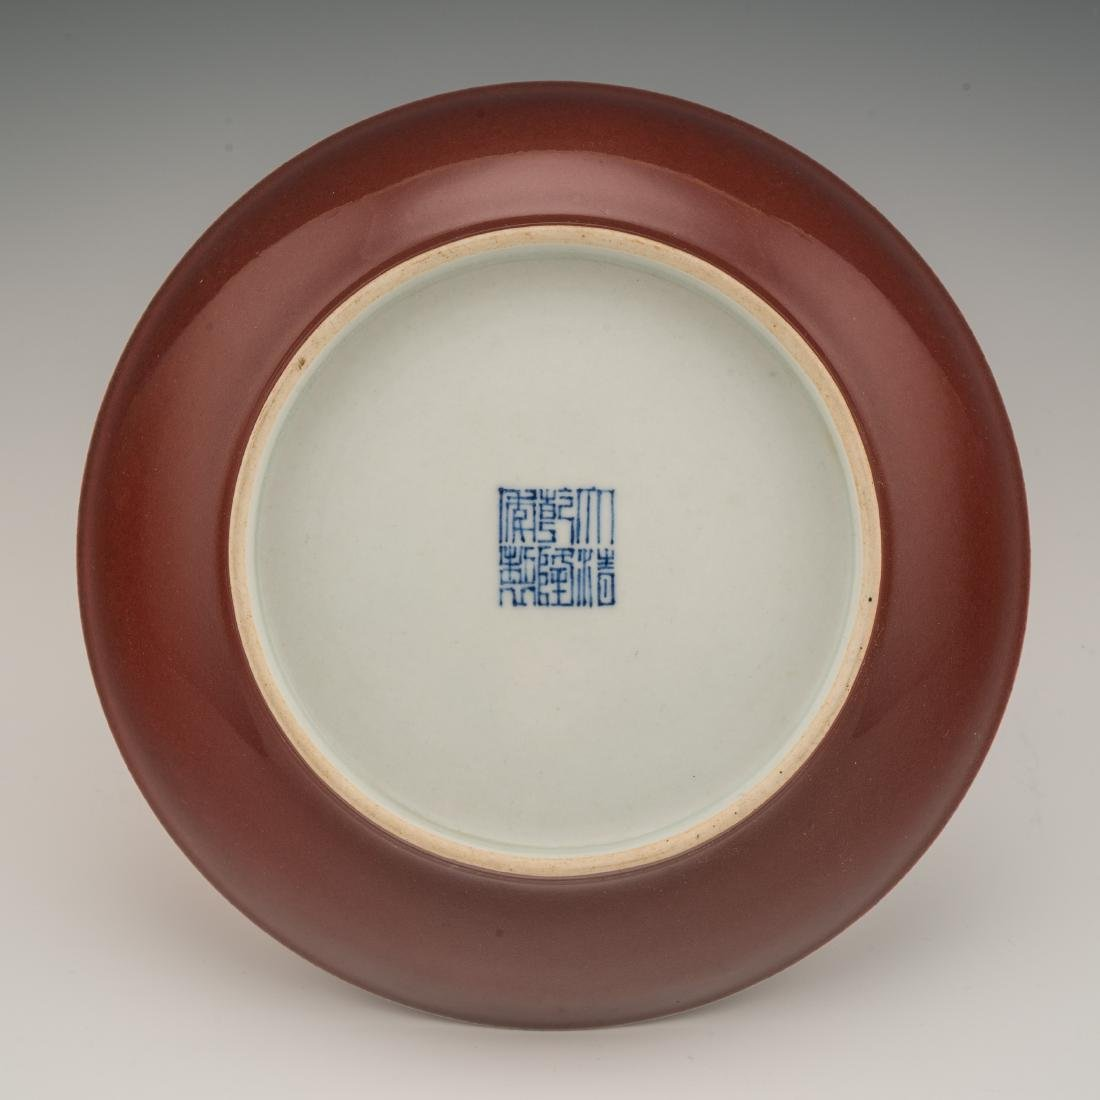 QIANLONG LOTUS PLATE WITH LIVER RED GLAZE